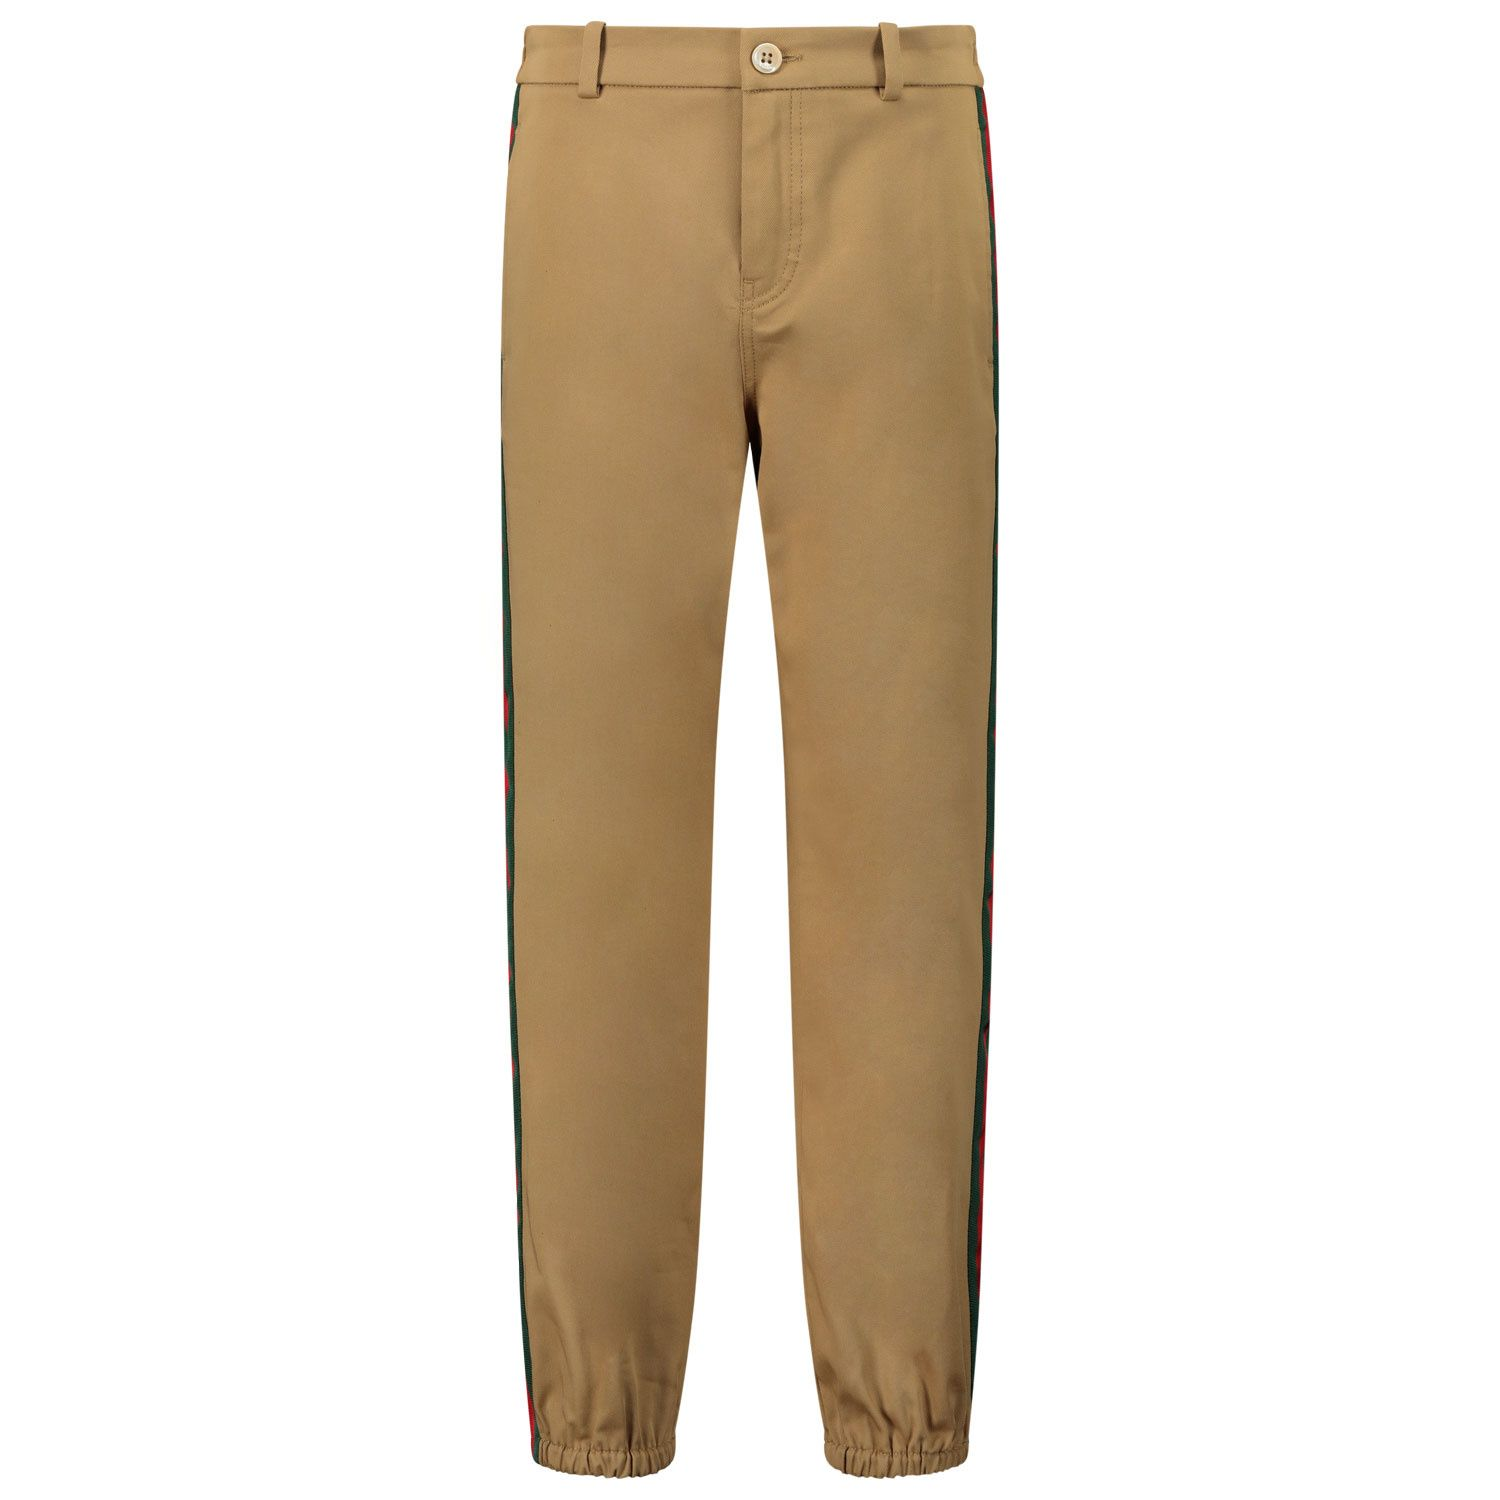 Picture of Gucci 573995 kids jeans camel